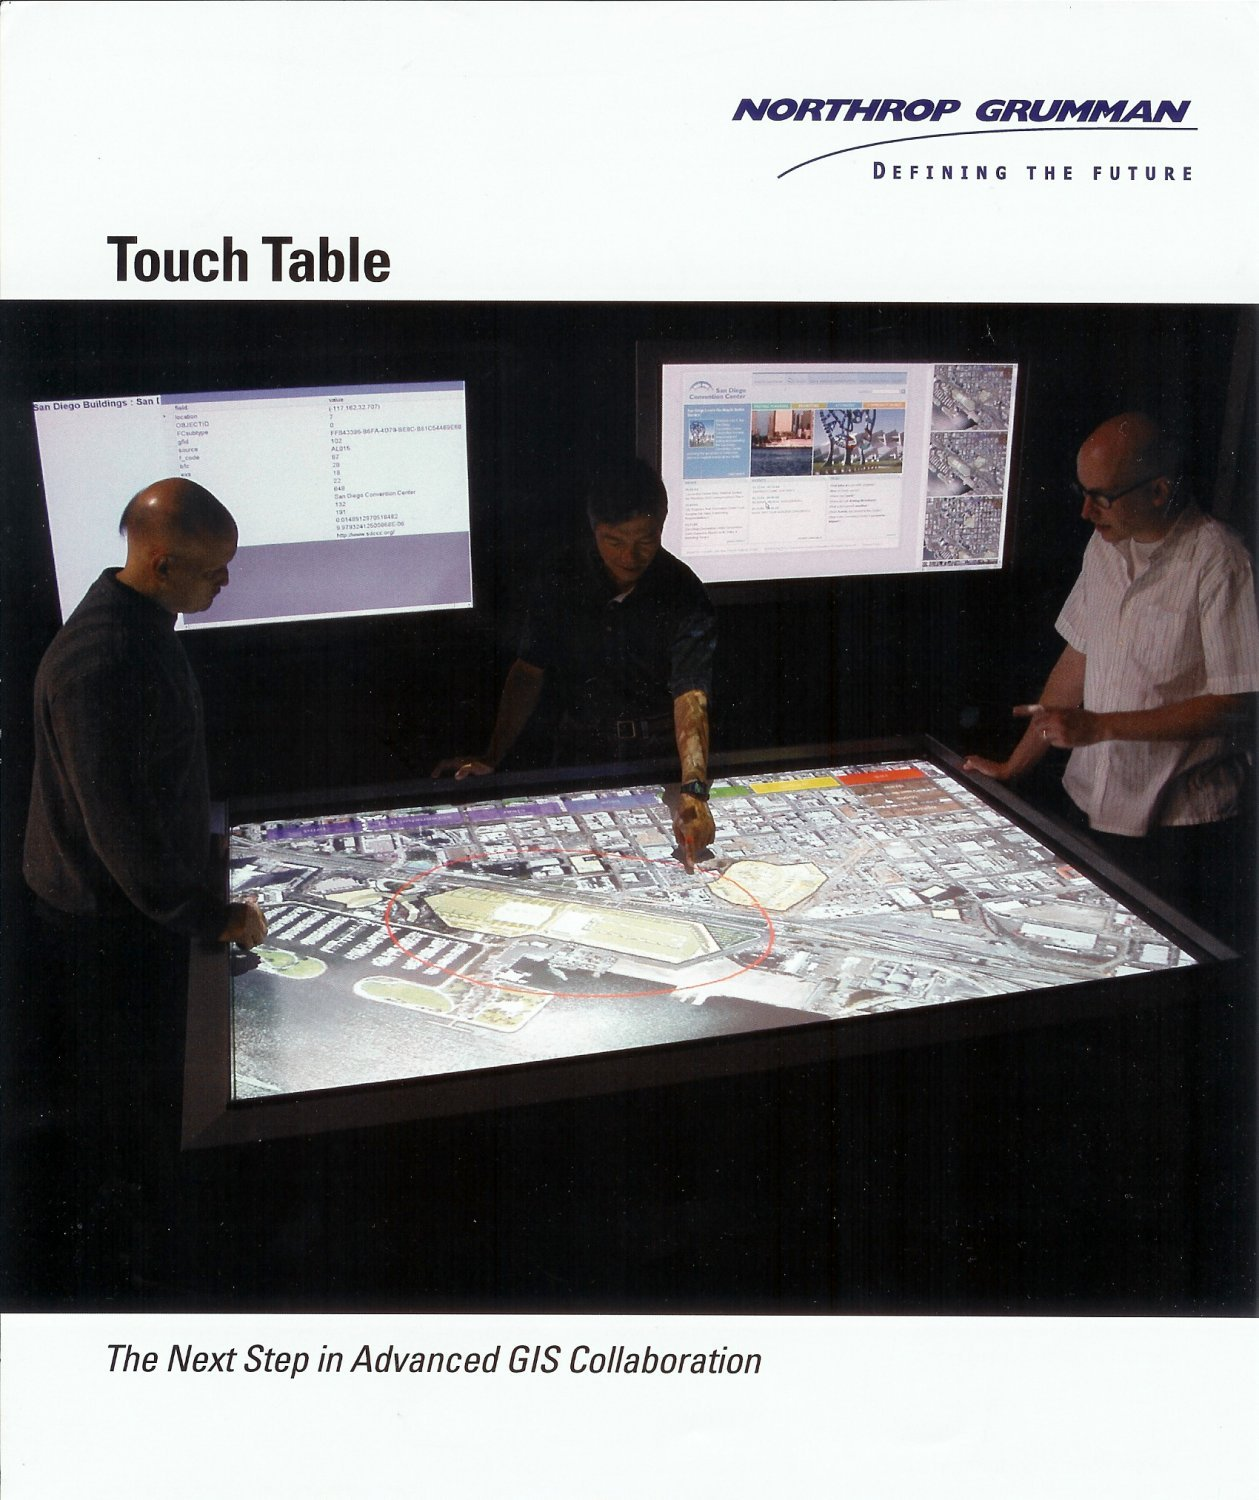 Northrop%20Grumman%20Touch%20Table 1 <!  :en  >Northrop Grumman TouchTable + Zebra Imaging 3D Digital Holographic (Digital Hologram) Technology + Interactive Wall Tech = Better Warfare Ops<!  :  >